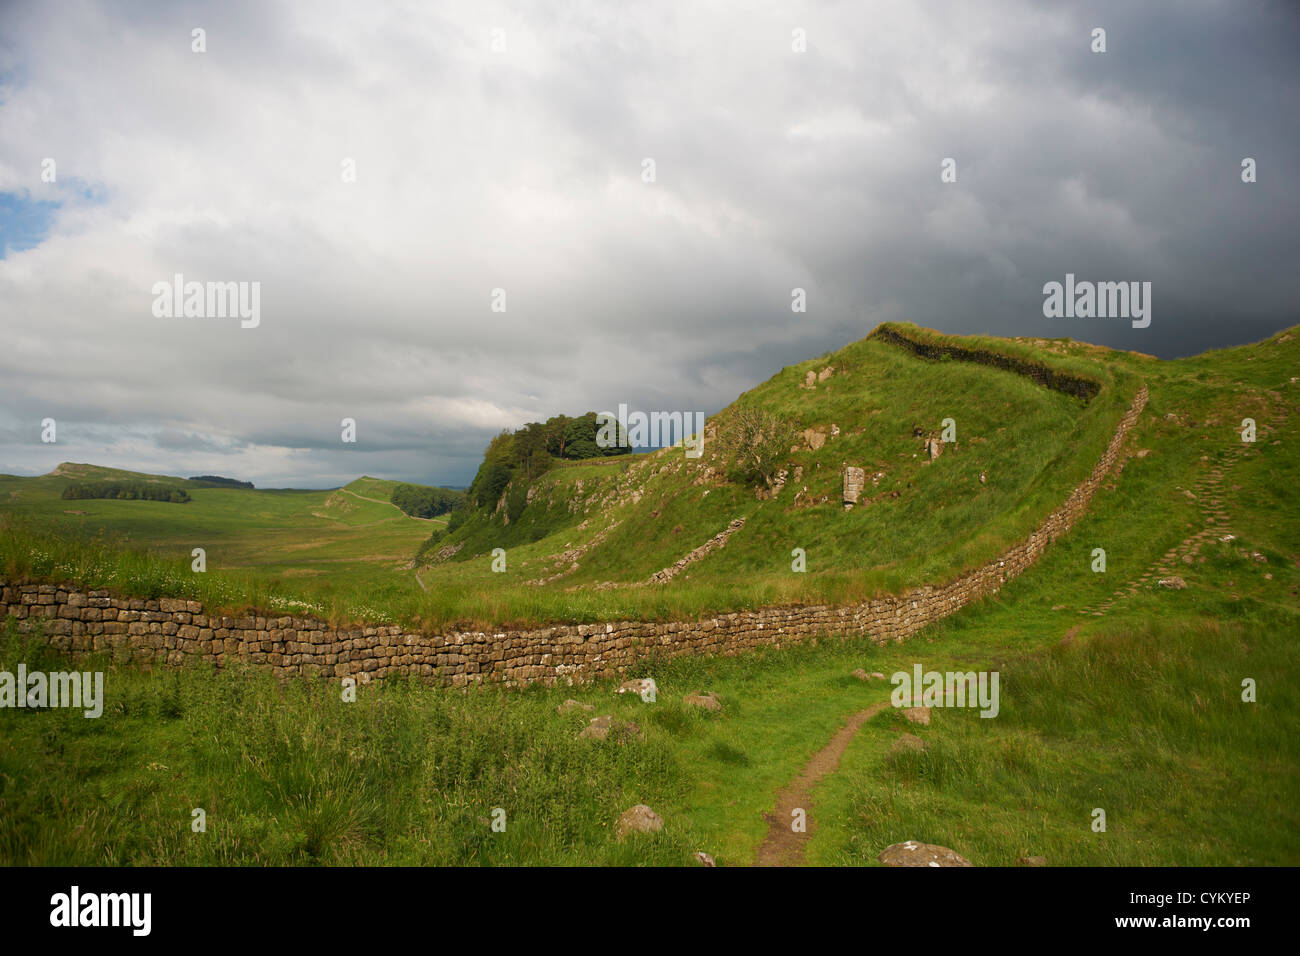 Stone walls in rural field - Stock Image